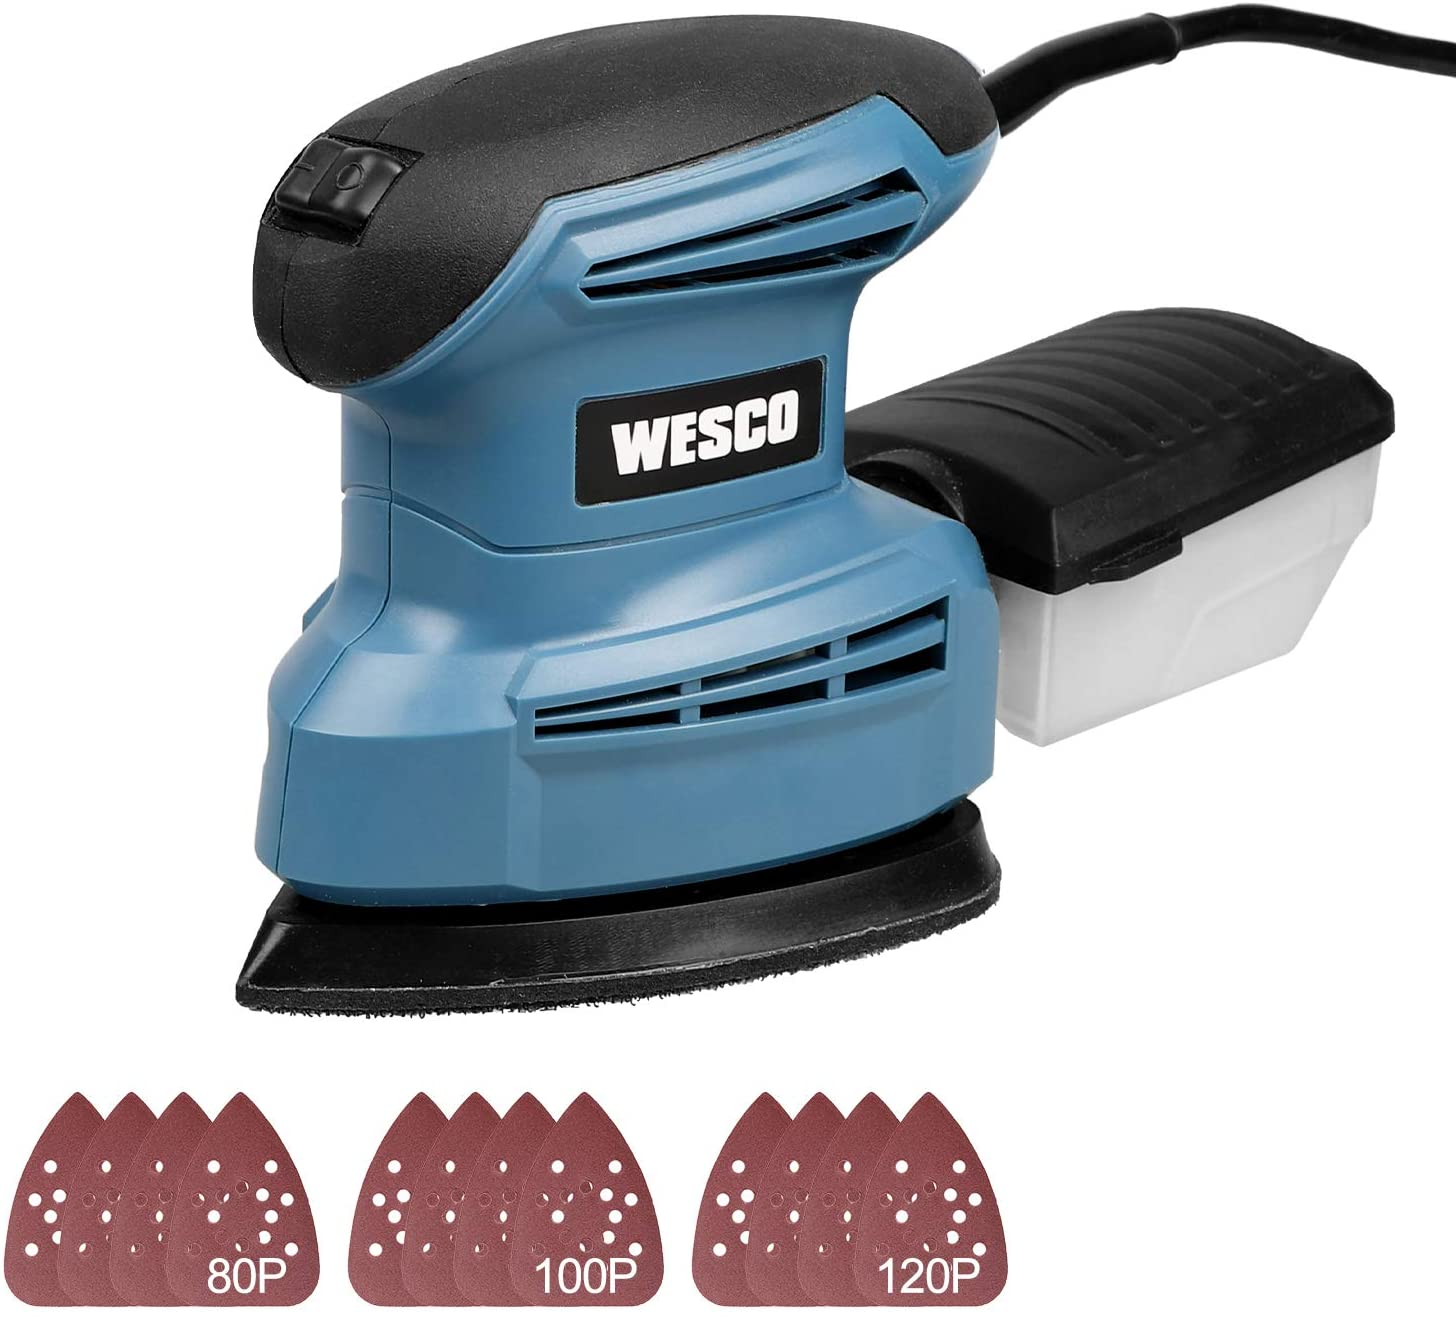 WESCO Compact 1.3A Mouse Detail Sander with 12Pcs Sandpapers, 14,000 RPM, Efficient Dust Collection System, for Detail Sanding in Home Decoration /WS4067U